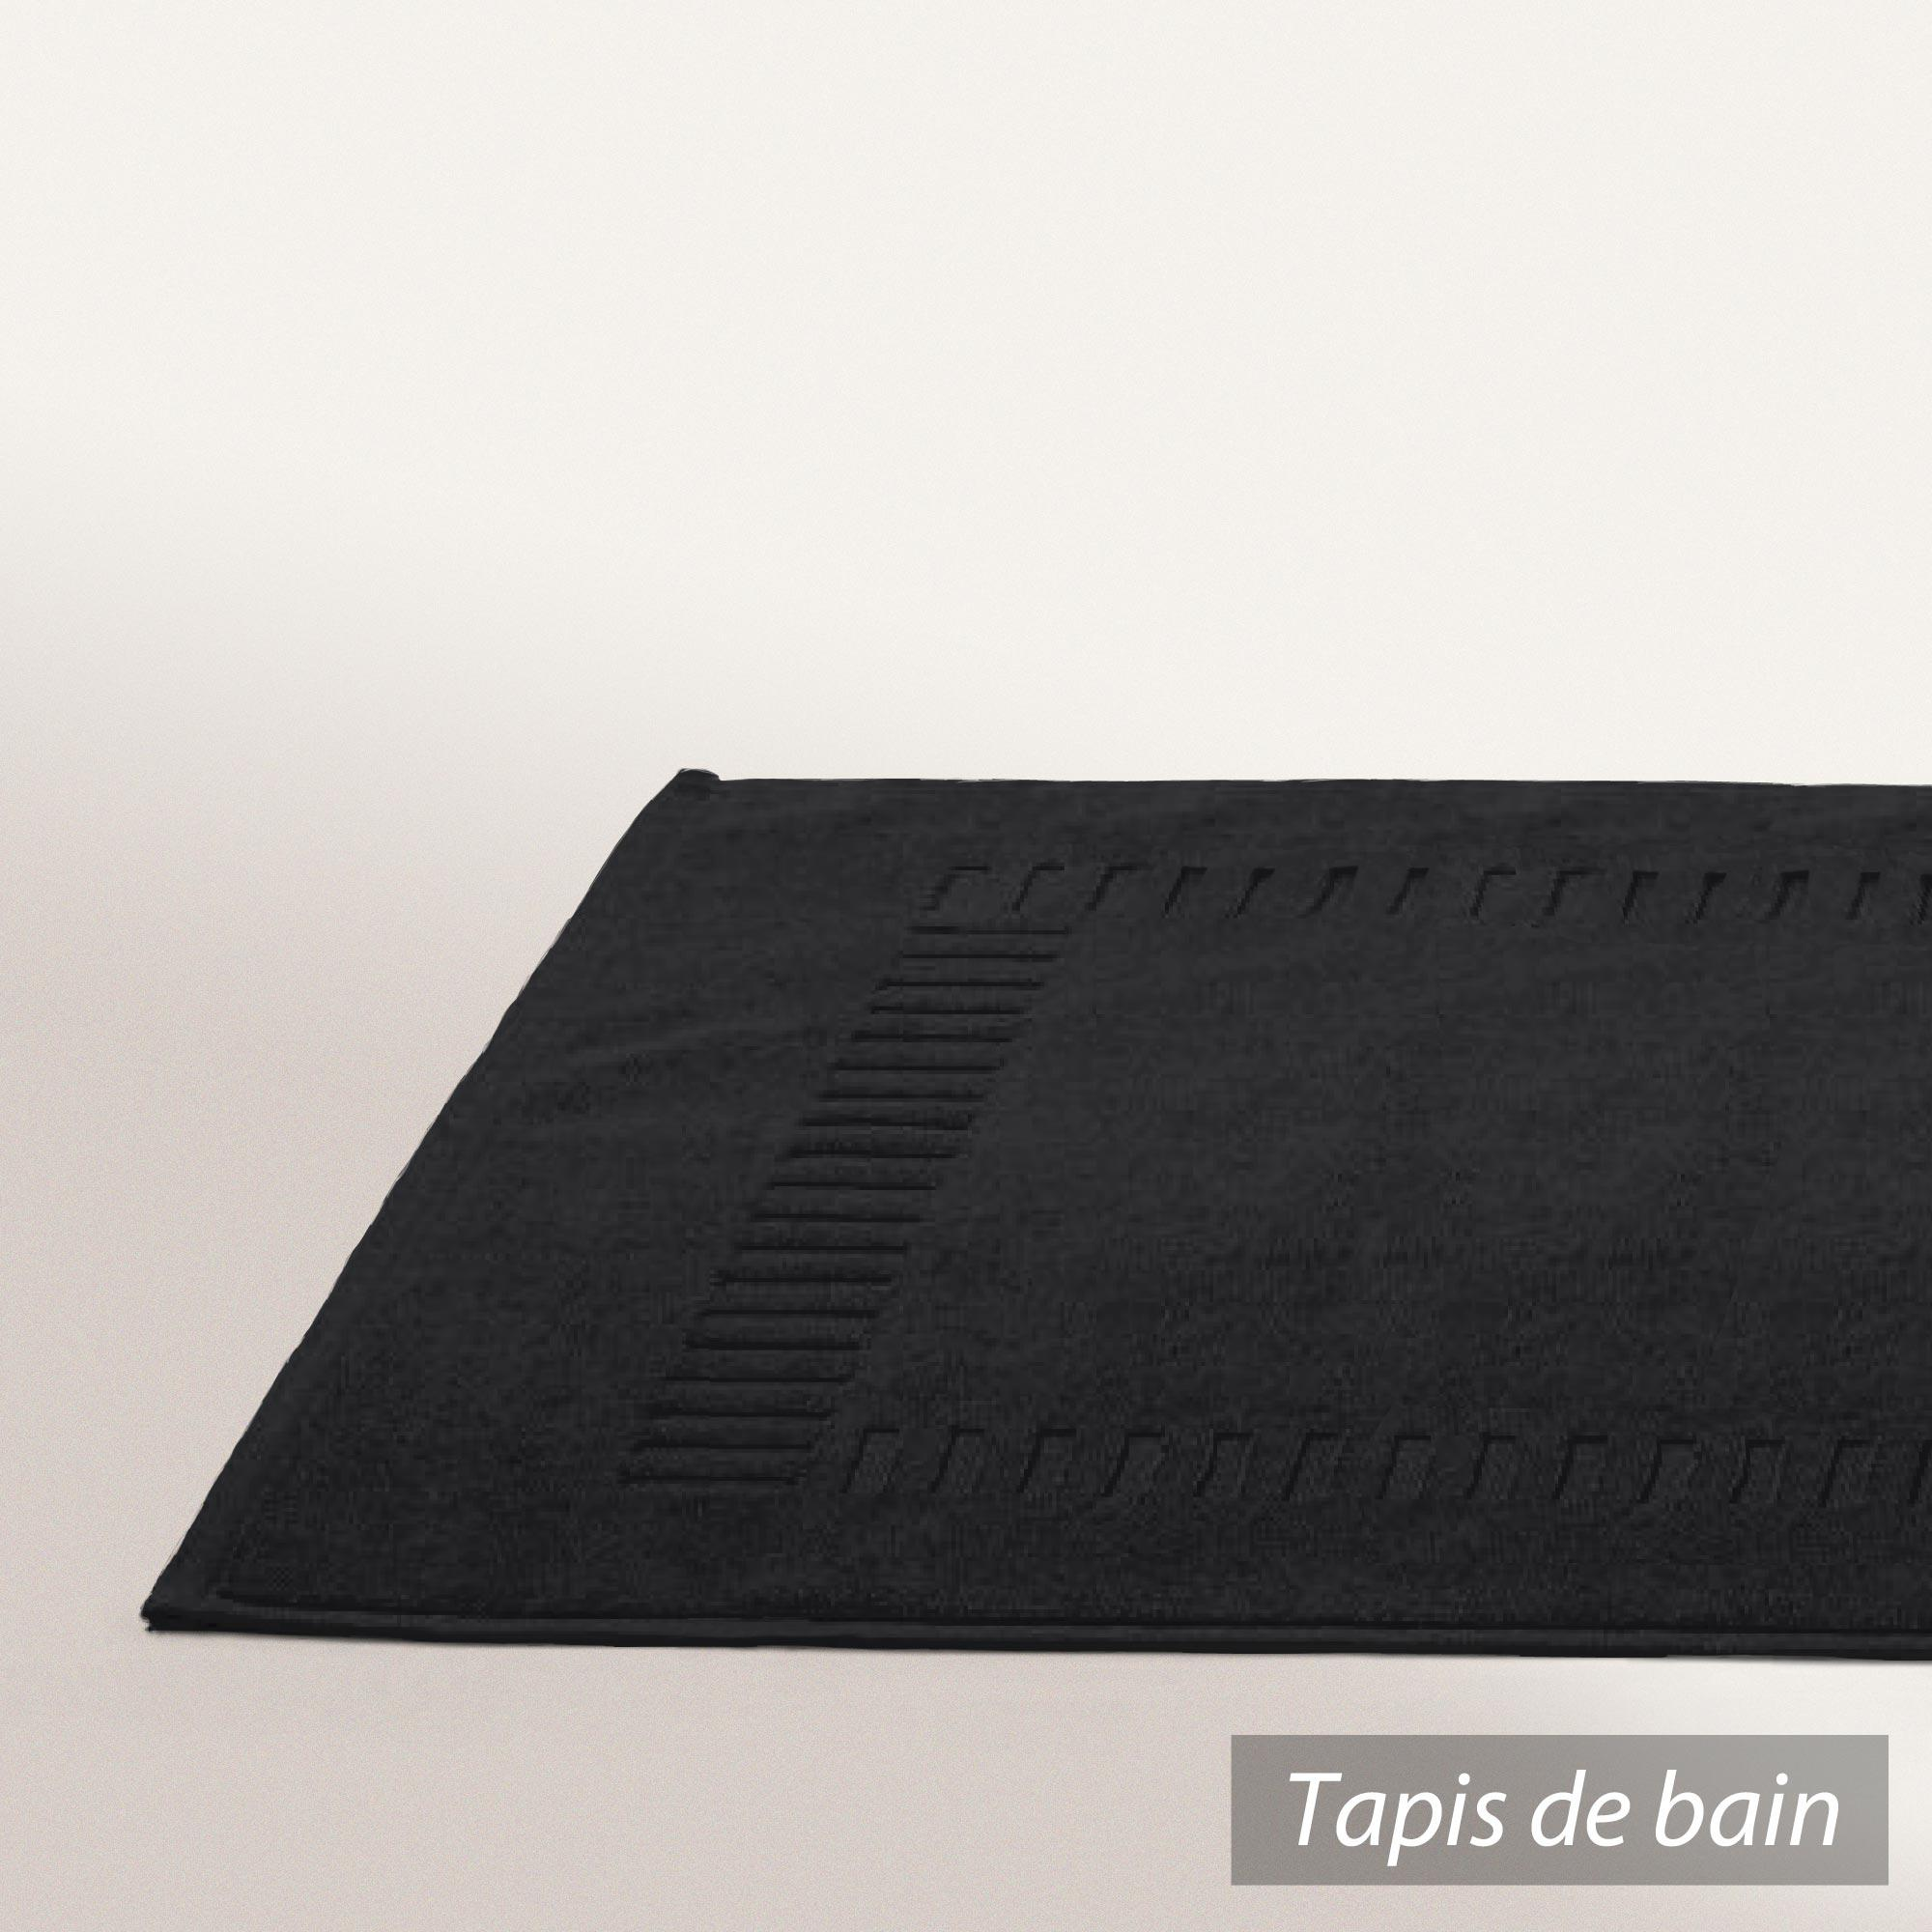 tapis de bain 50x70cm coton uni pure noir linnea vente de linge de maison. Black Bedroom Furniture Sets. Home Design Ideas